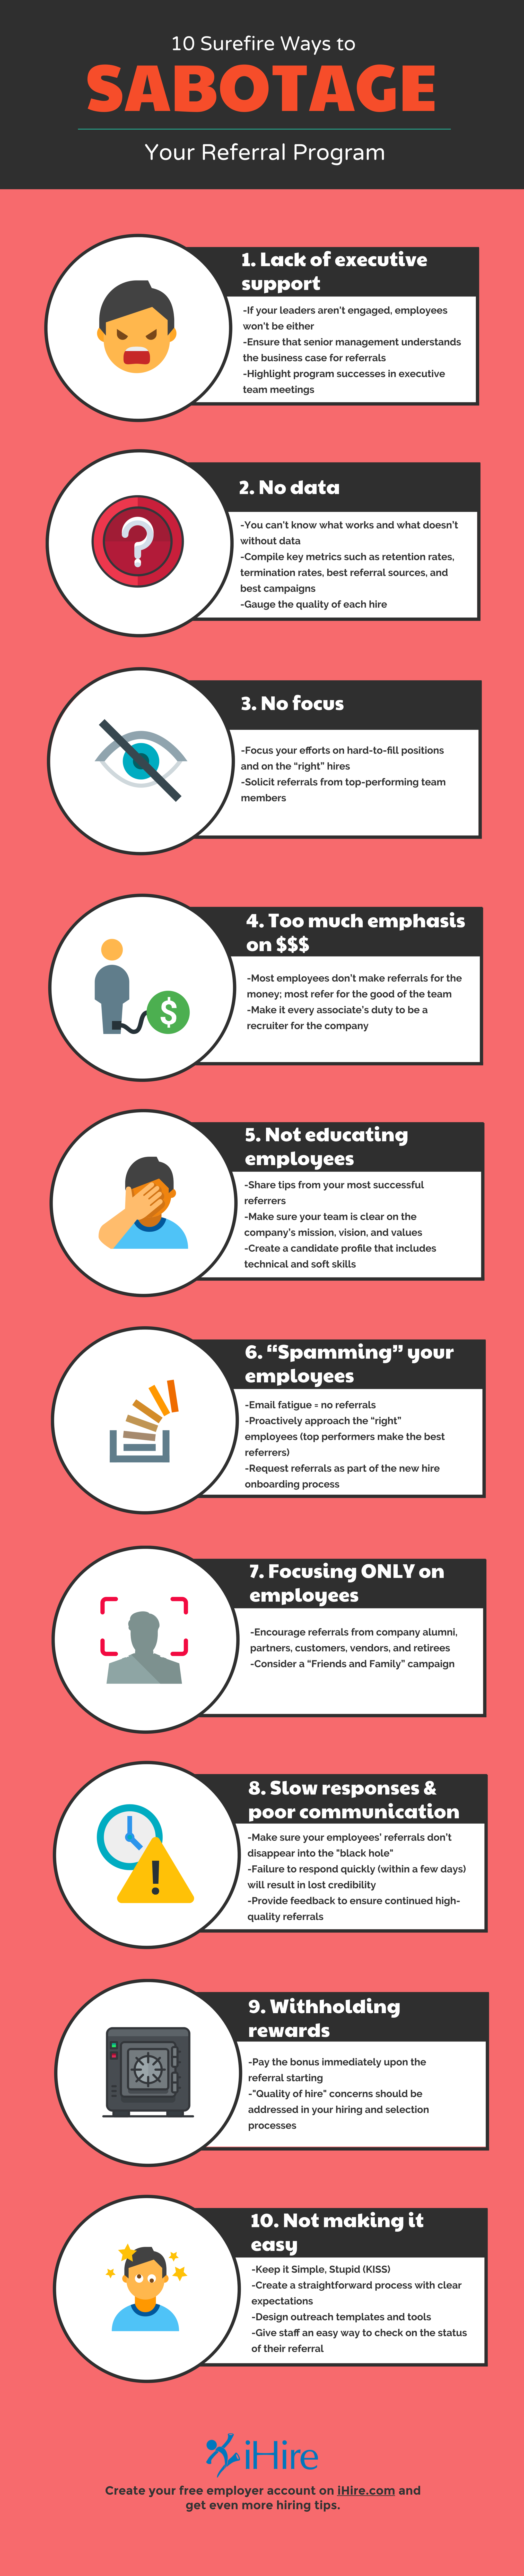 ten ways to sabotage your referral program infographic